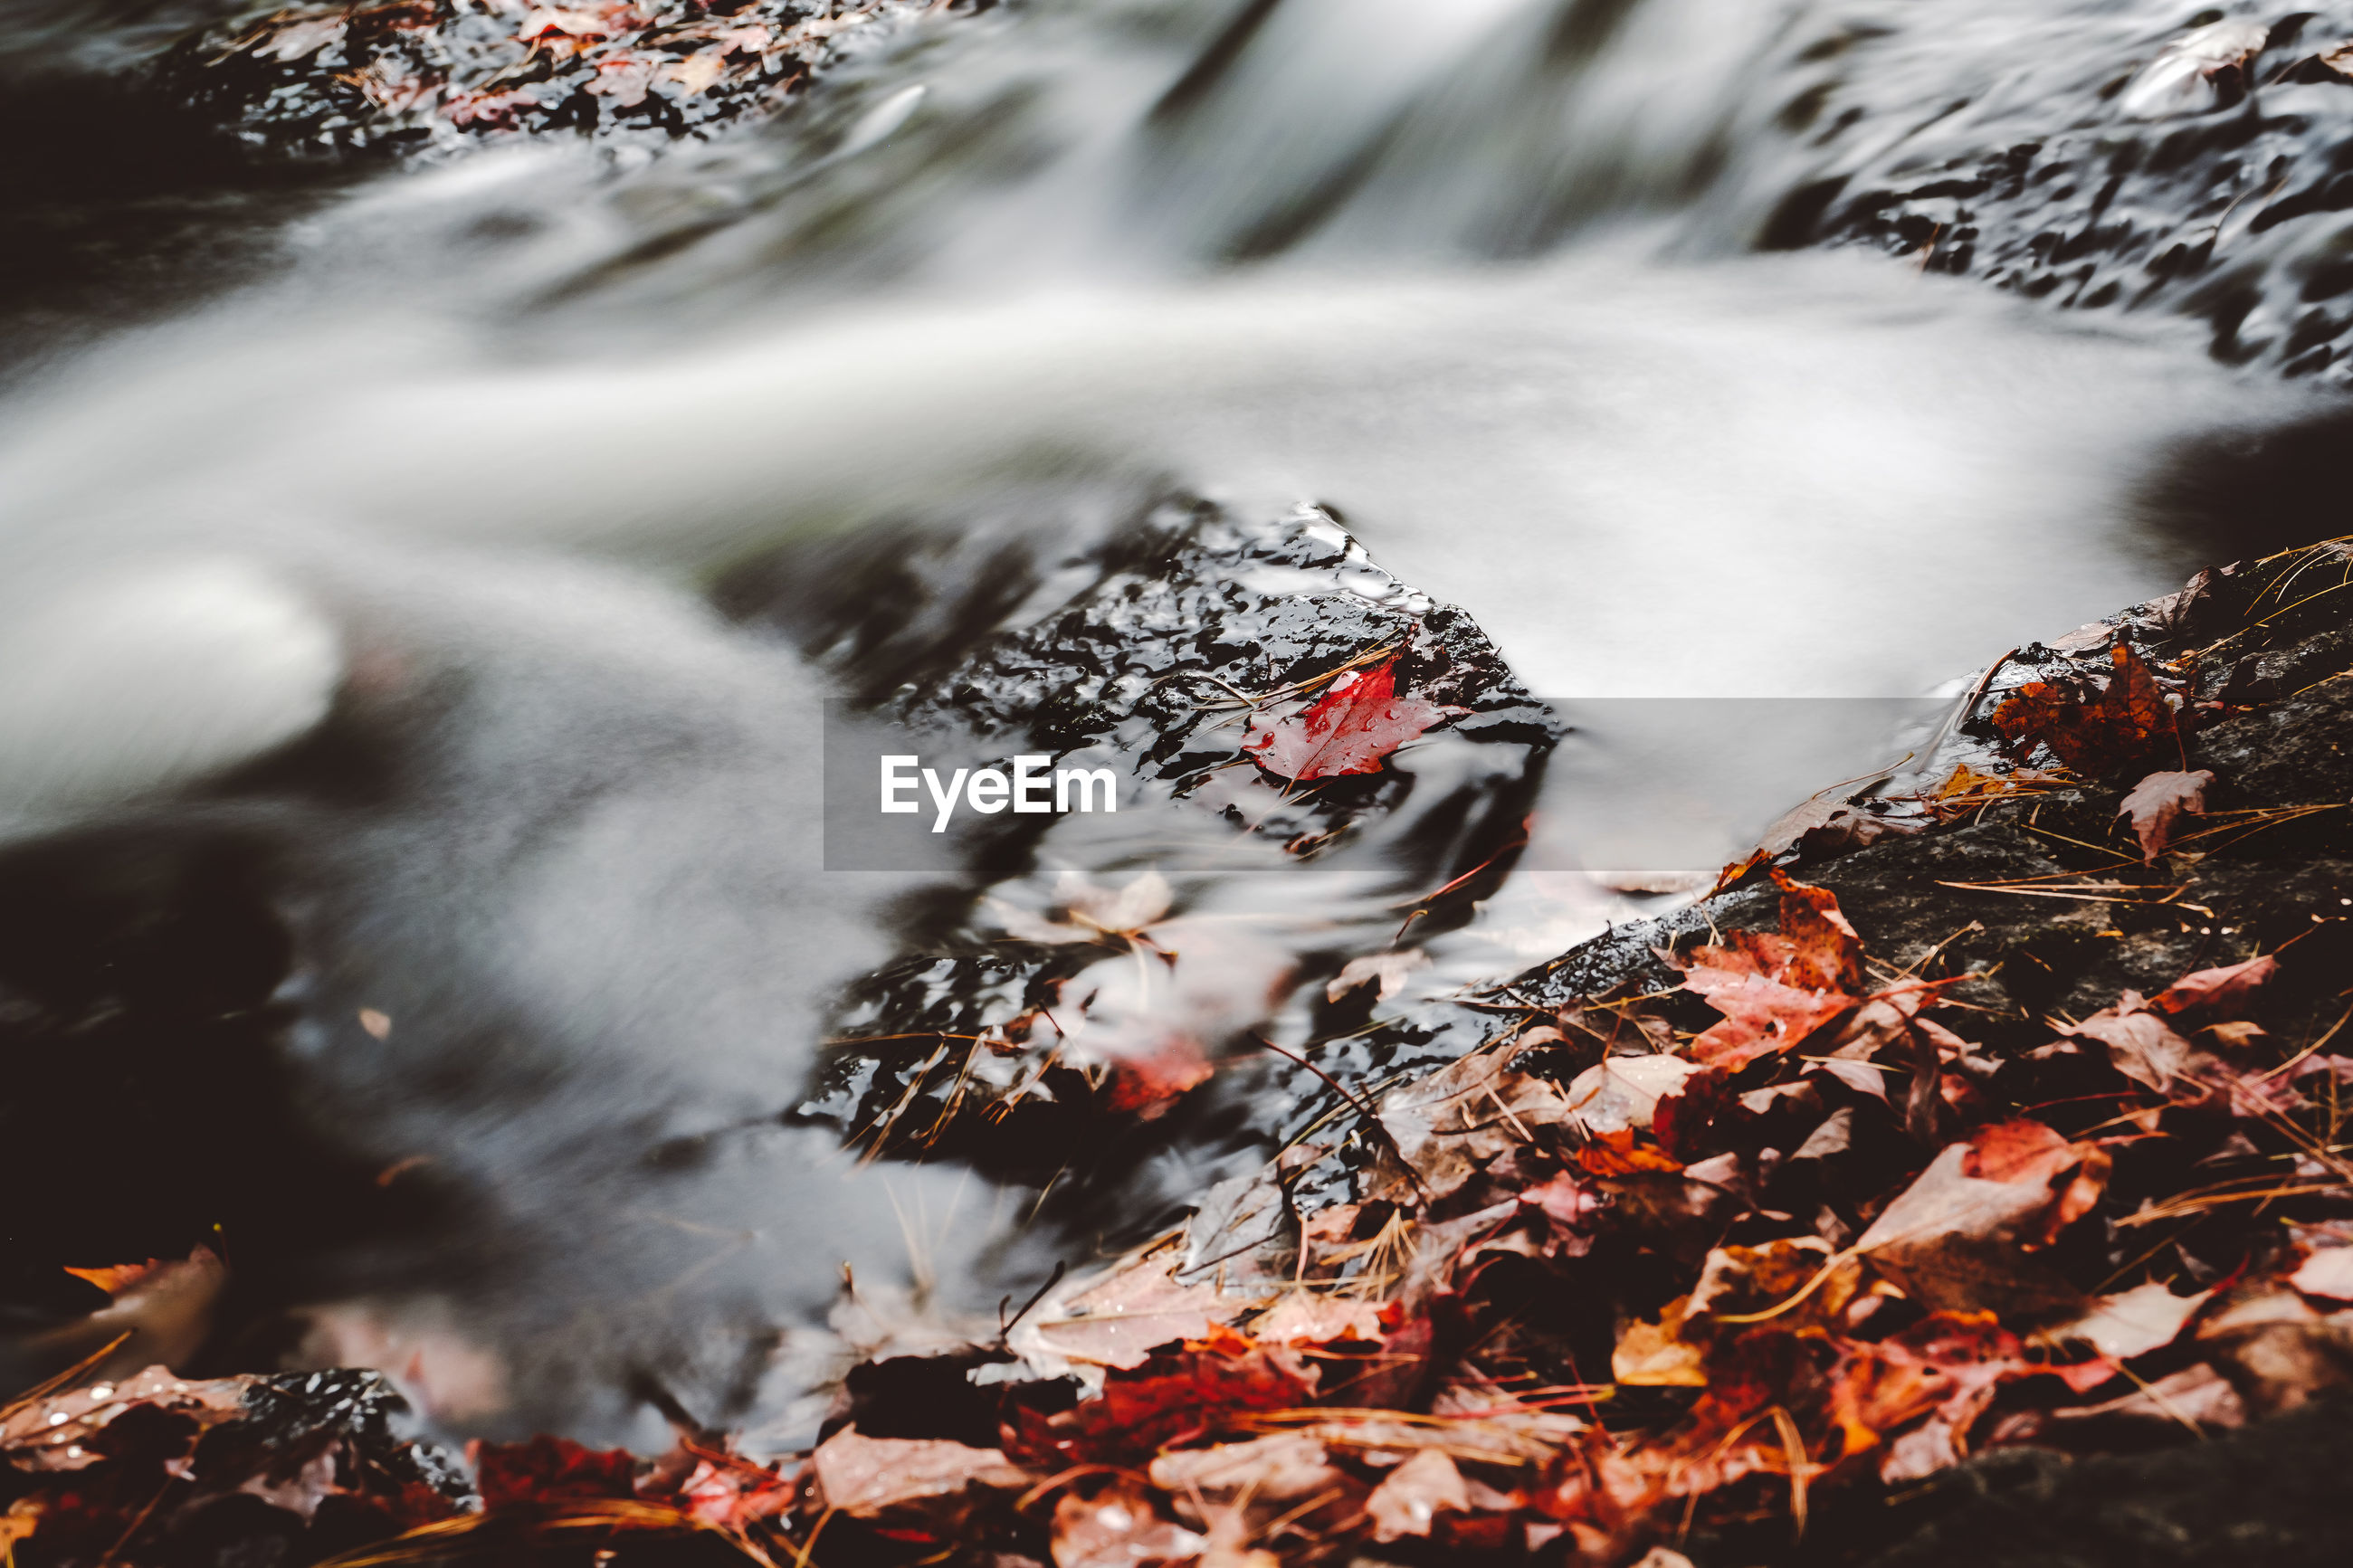 autumn, water, nature, leaf, no people, outdoors, one animal, animal themes, day, lake, change, pets, beauty in nature, close-up, mammal, bird